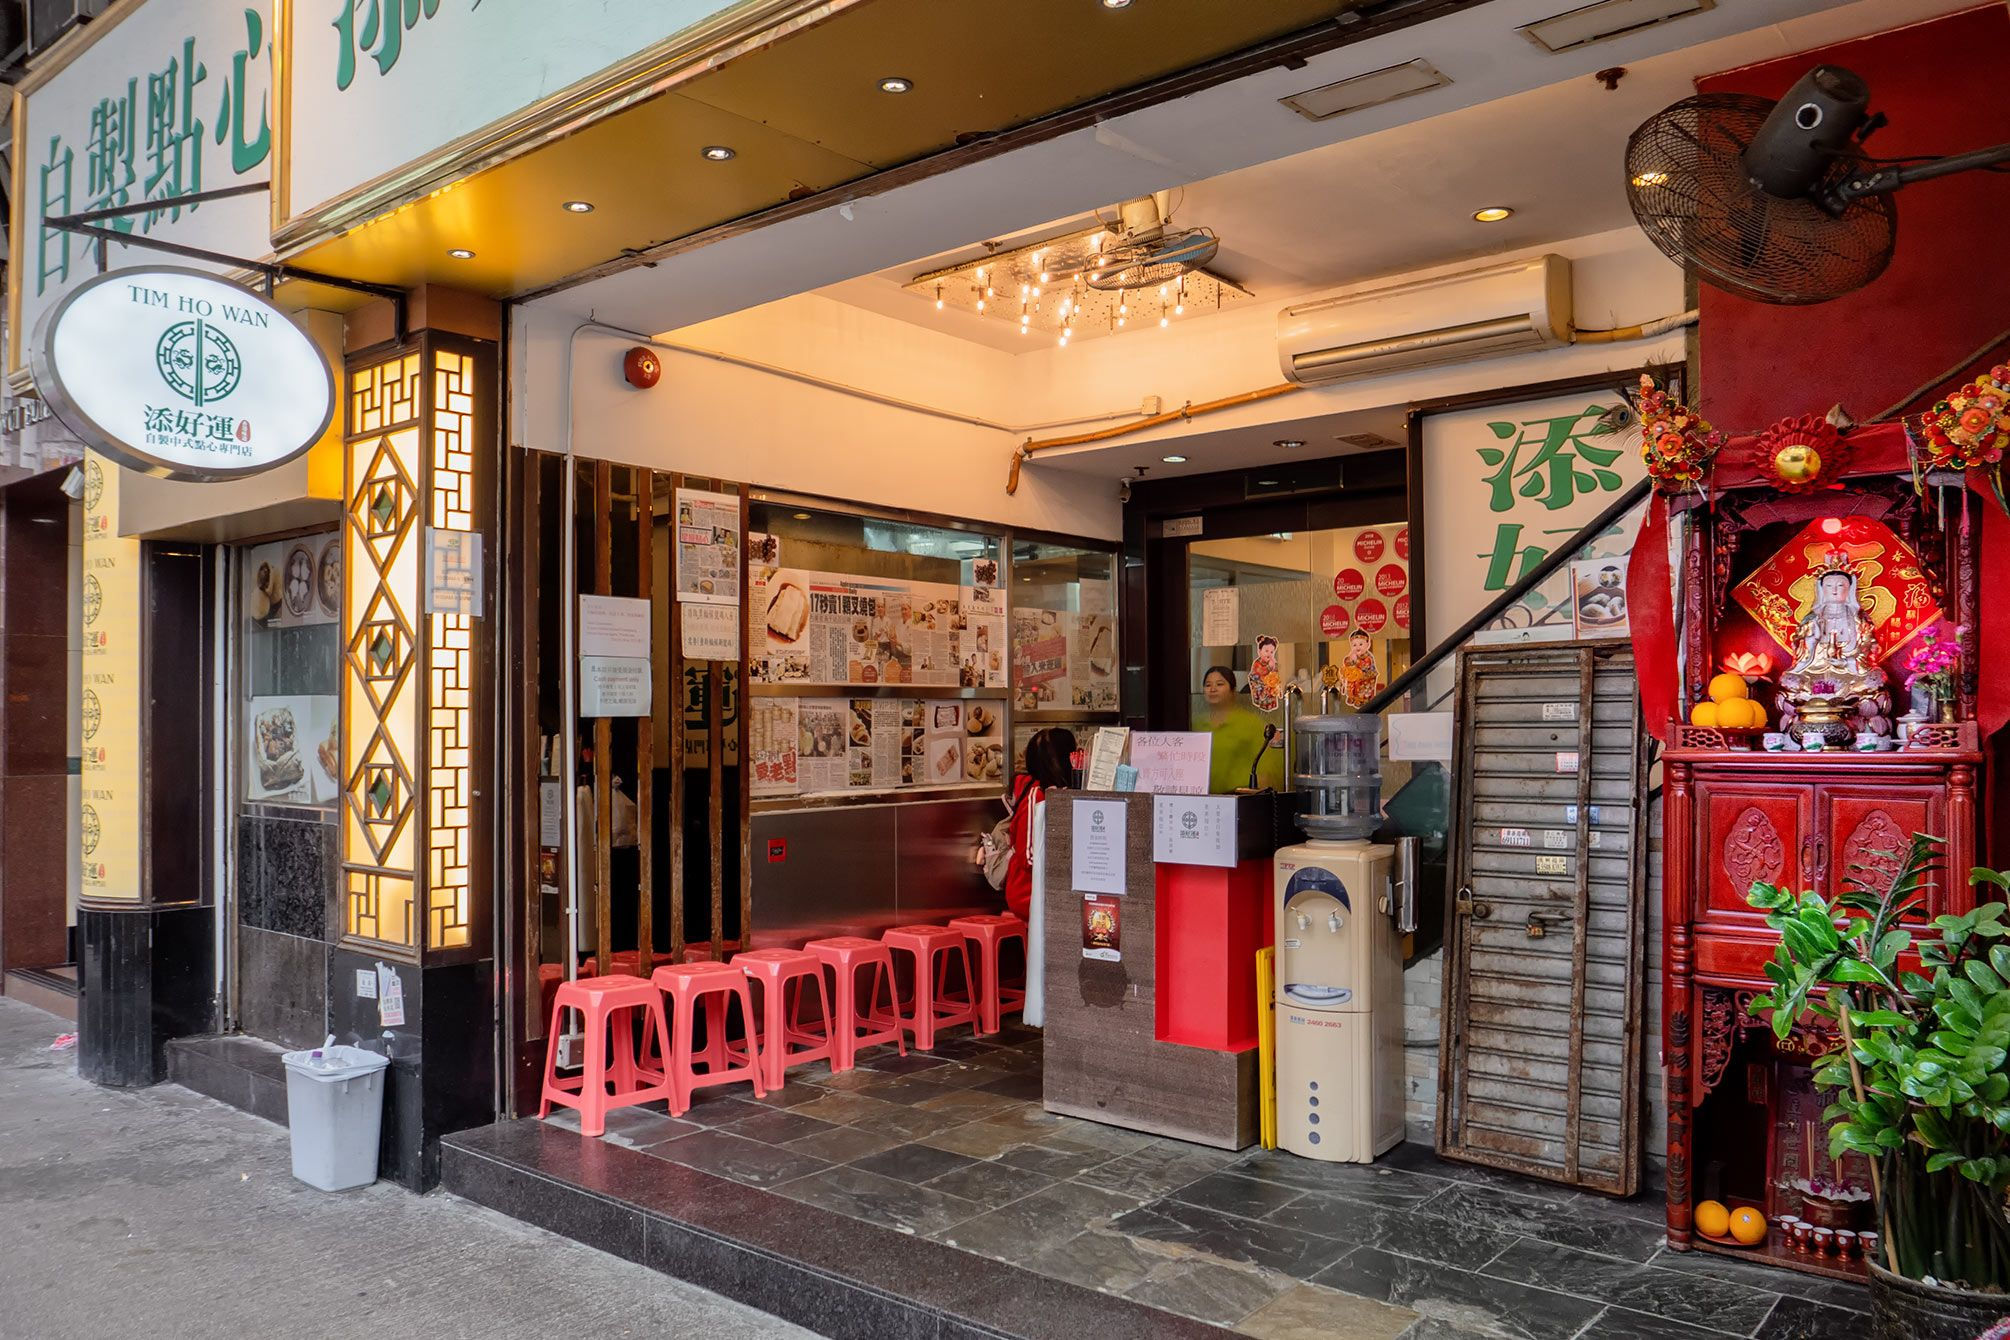 outside tim ho wan restaurant